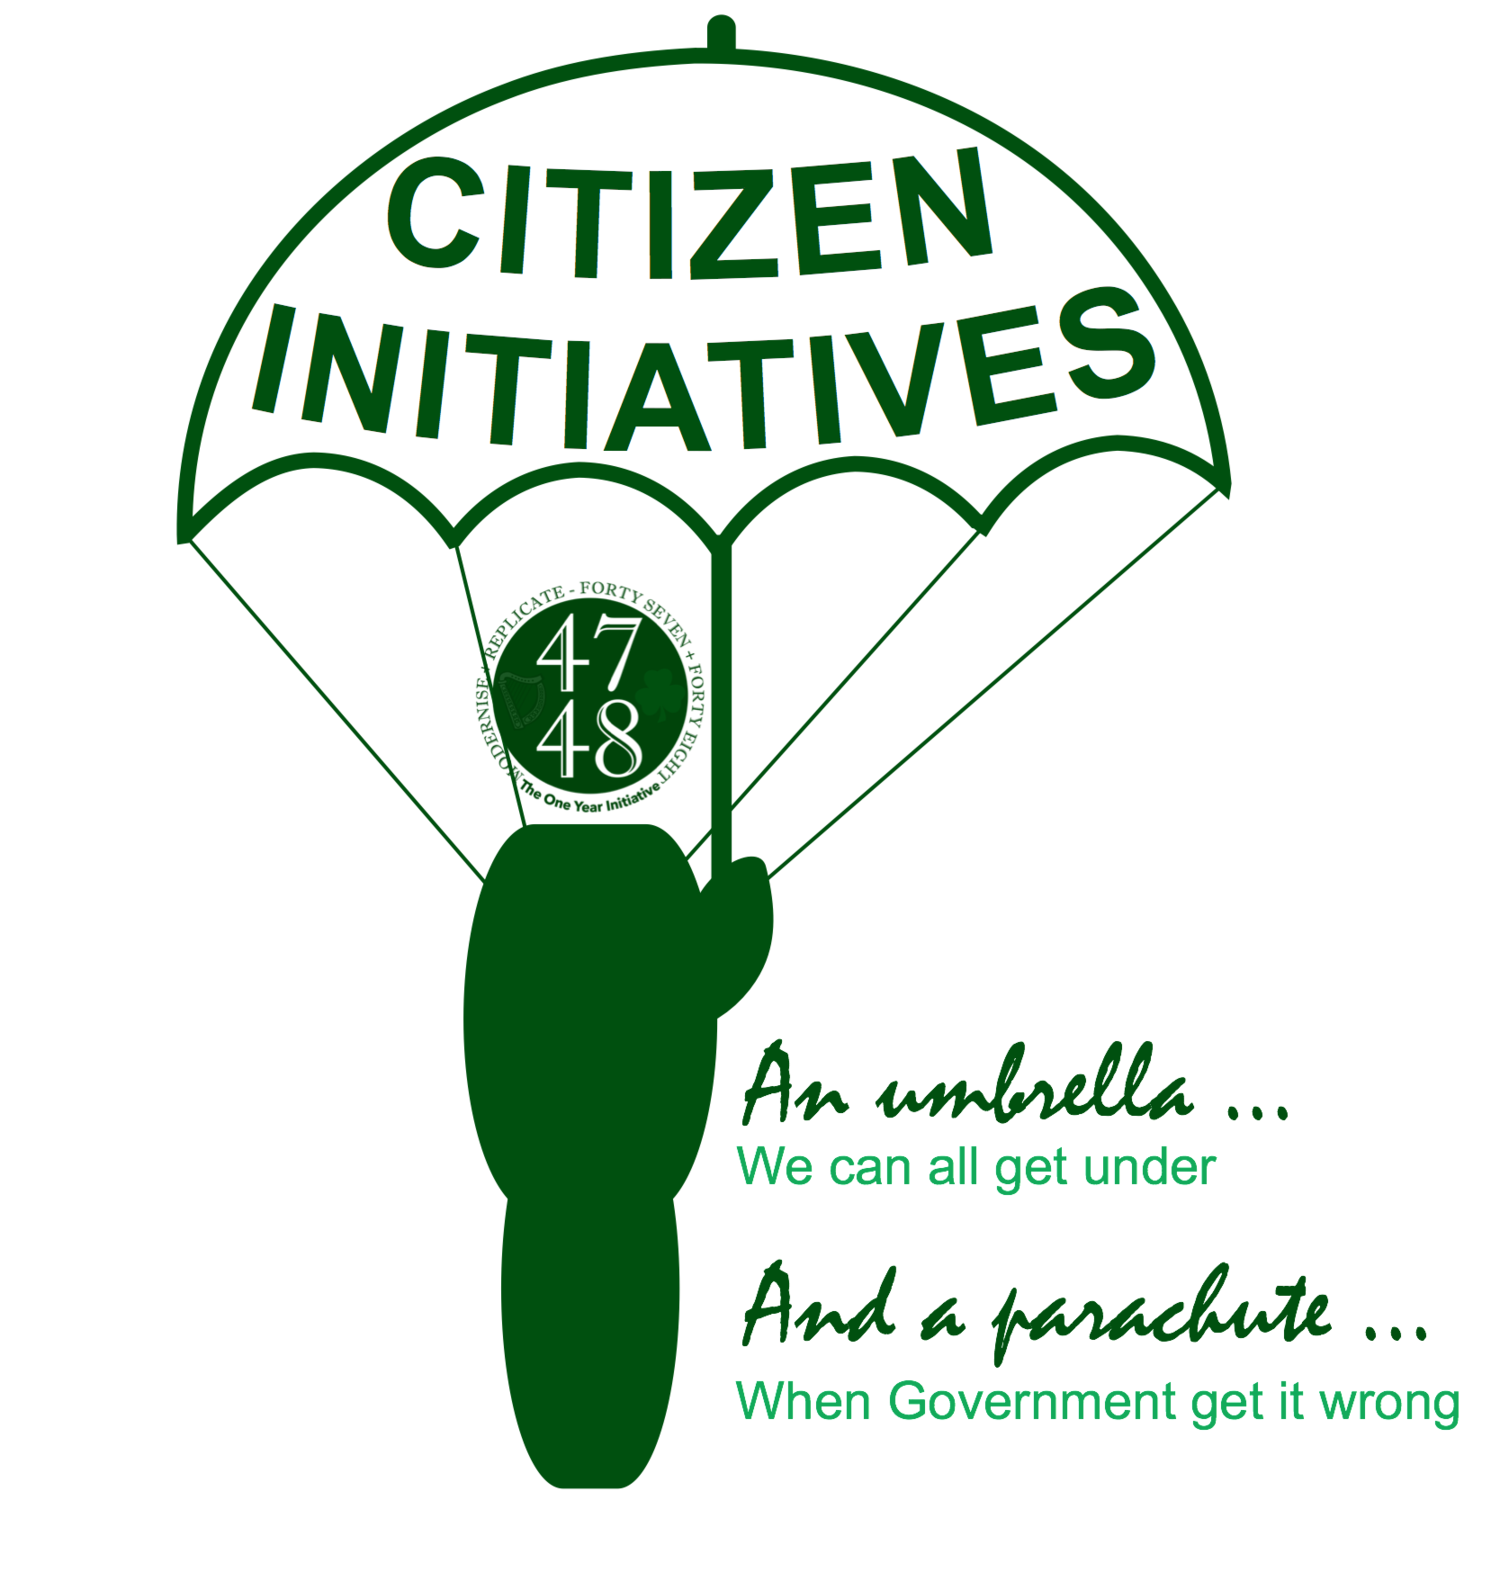 Citizen Initiatives